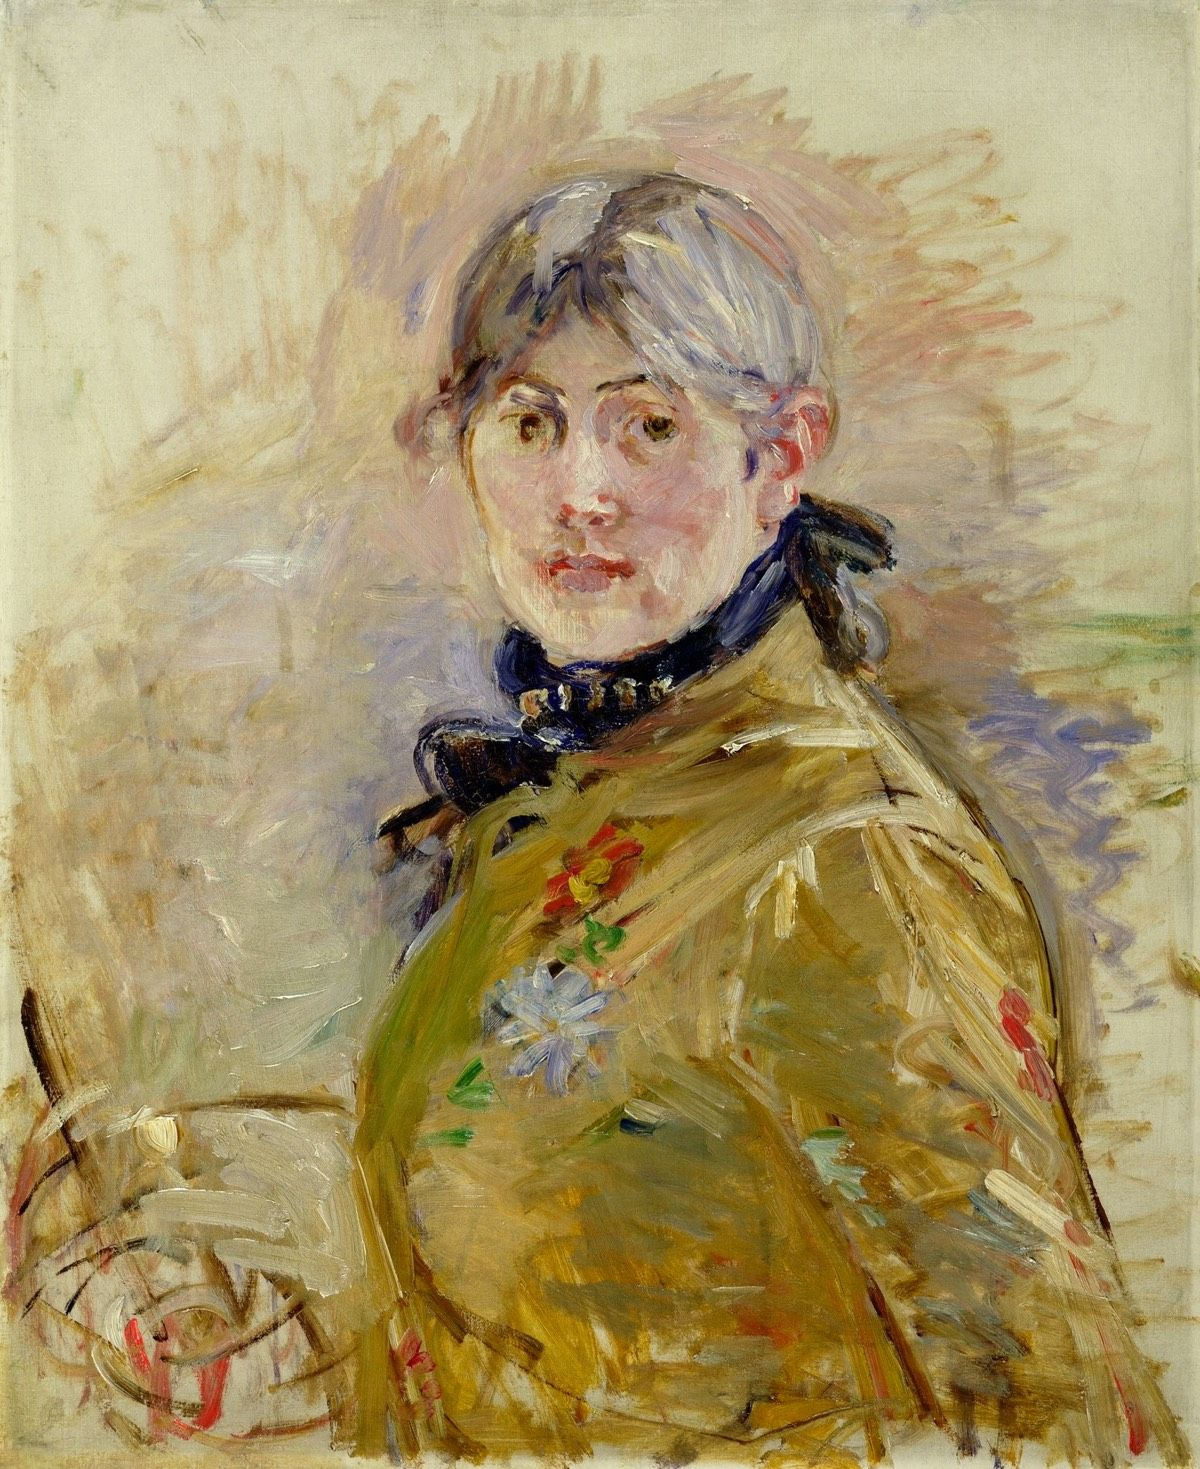 Berthe Morisot, the Forgotten Pioneer of Impressionist Painting is part of Berthe morisot, Morisot, Portrait painting, Impressionist paintings, French impressionist painters, Manet - Manet, Degas, Renoir, Monet, and Morisot  You've likely not heard of that last one, but Berthe Morisot was one of the foundi